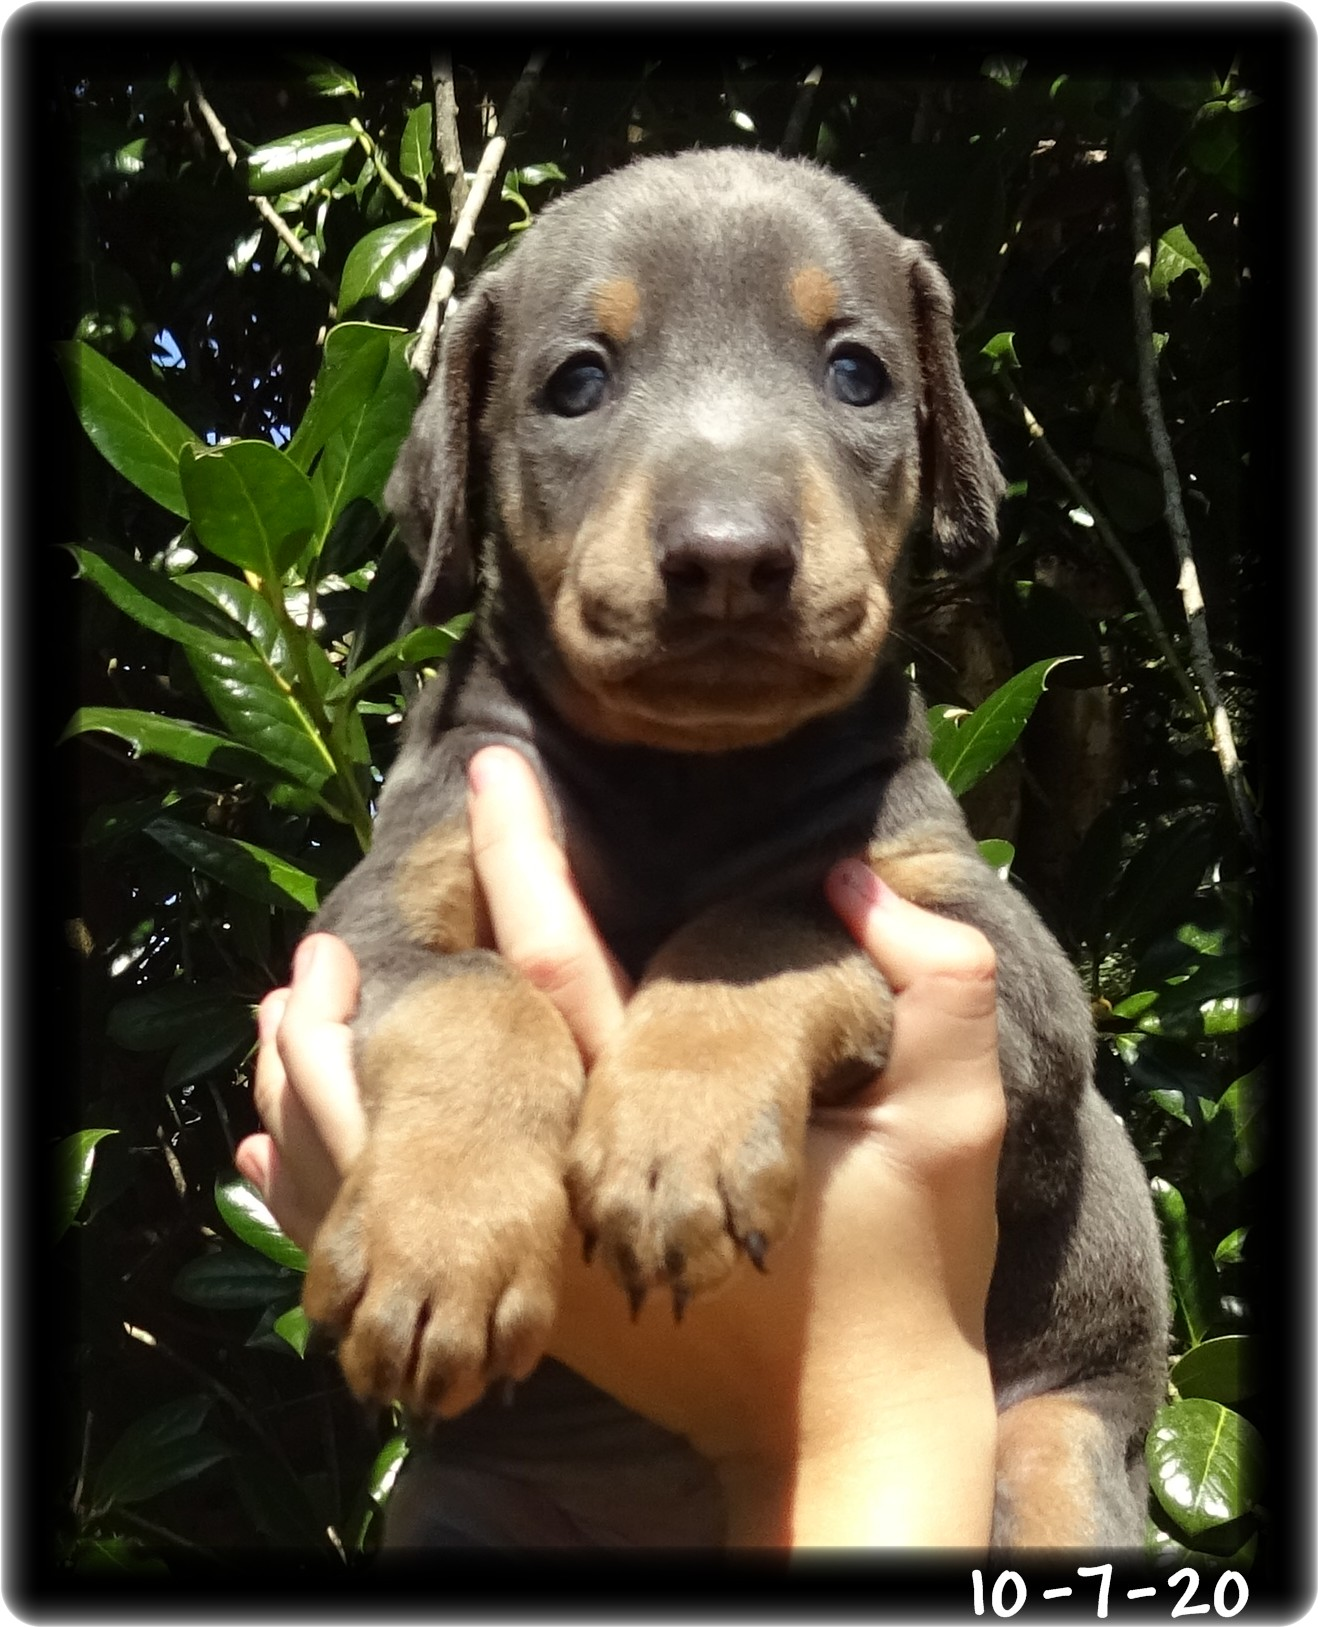 Louis ... Born 9-3-20 - Shelby's silver boy has a family and will be heading to Texas once he completes his schooling.